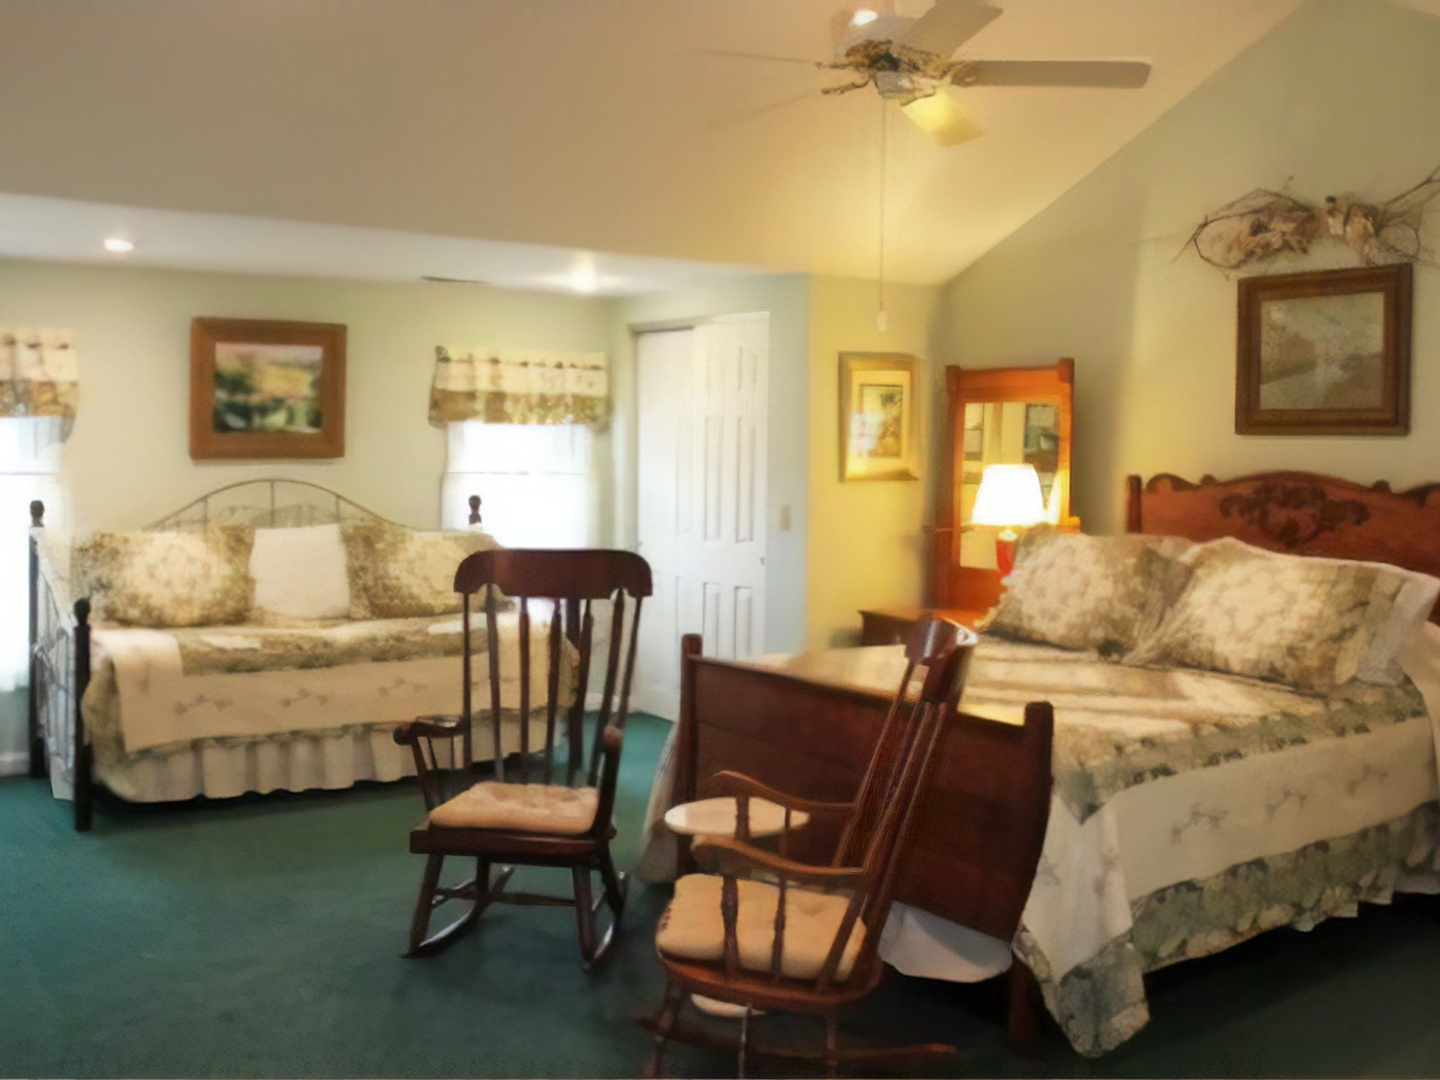 A bedroom with a bed and a chair in a room at First Farm Inn.